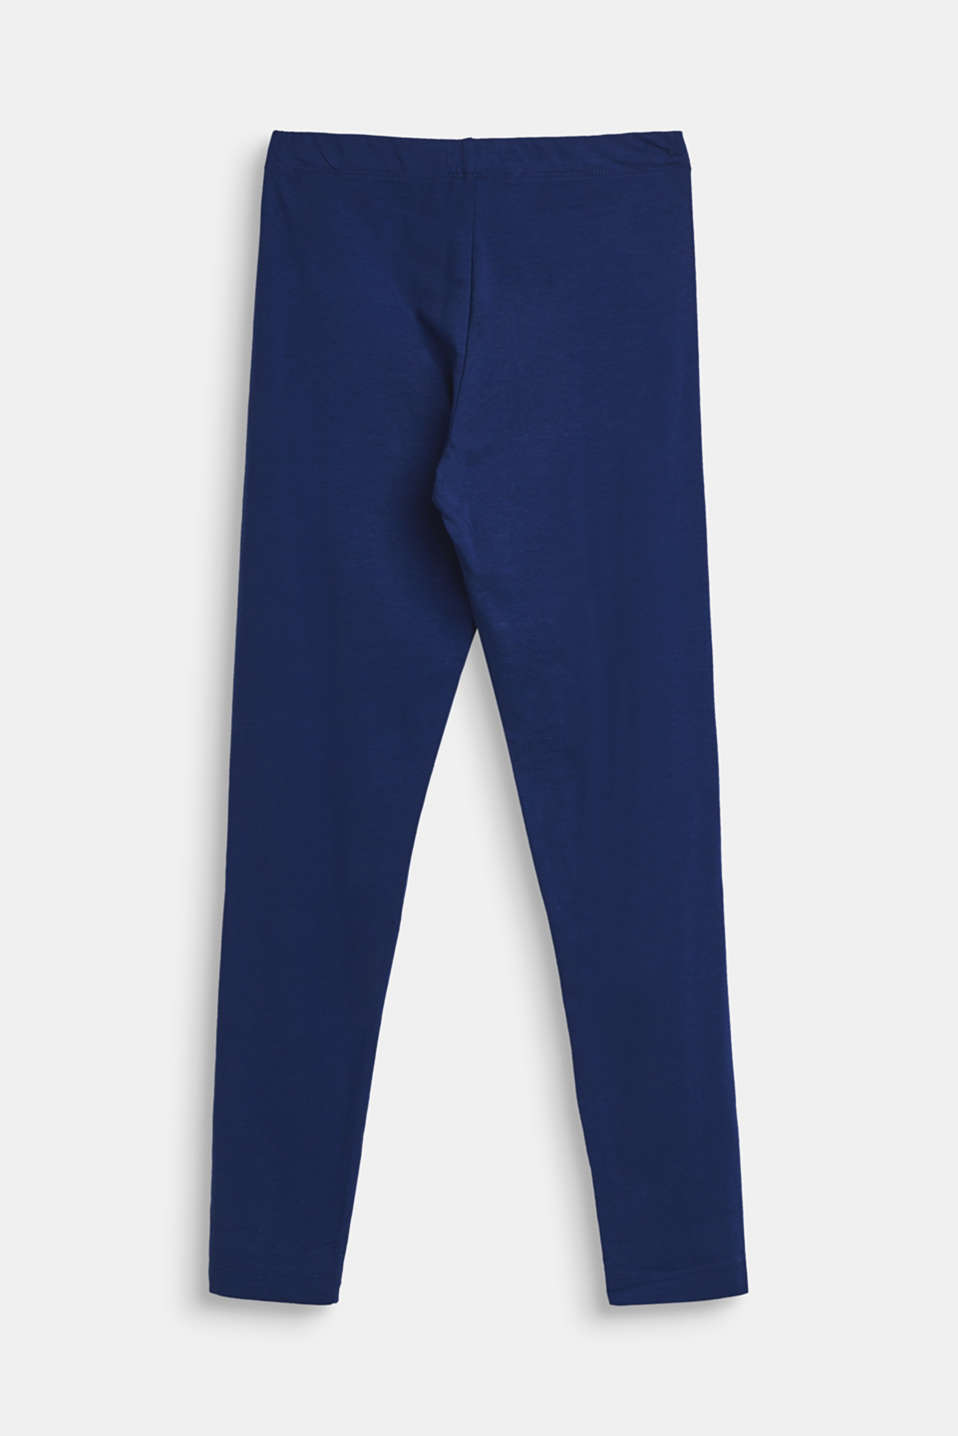 Pants knitted, LCMARINE BLUE, detail image number 1